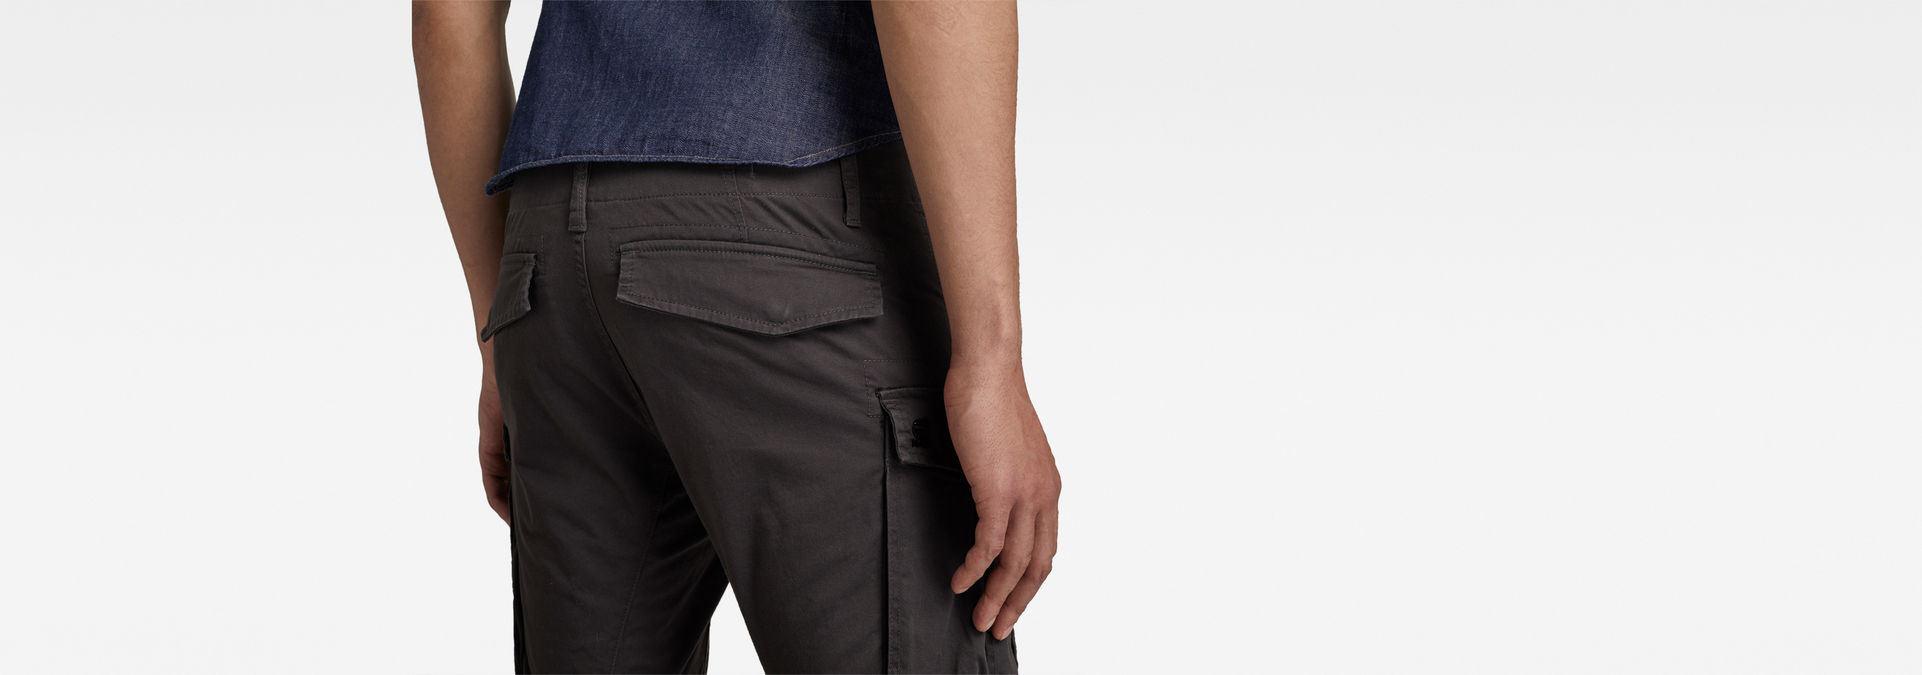 578cee0345e ... G-Star RAW® Rovic Zip 3D Straight Tapered Pant Grey model back zoom ...